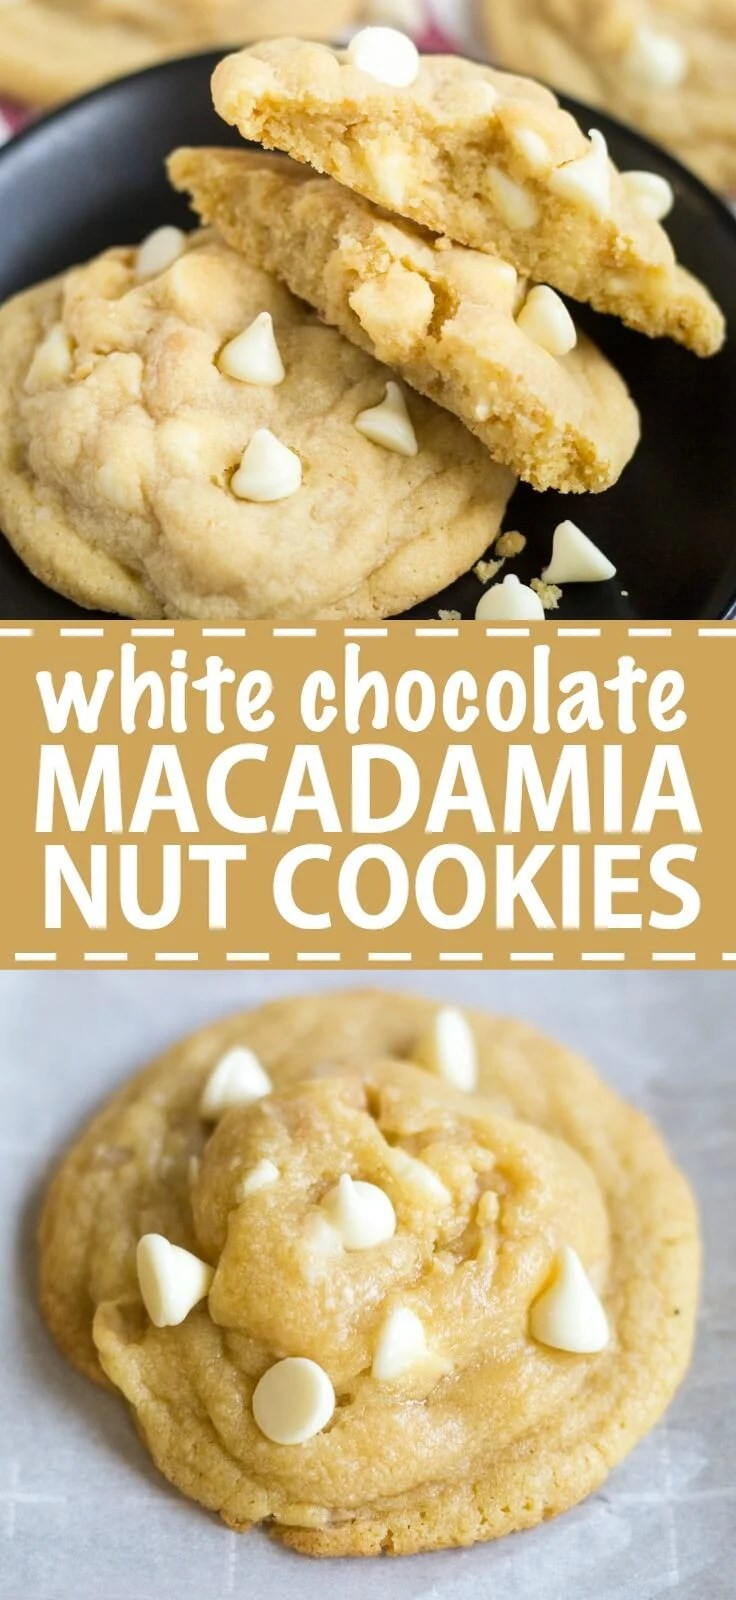 Thick, soft and chewy, these white chocolate macadamia nut cookies are a delicious addition to your cookie list. They're so easy to make and they freeze really well!